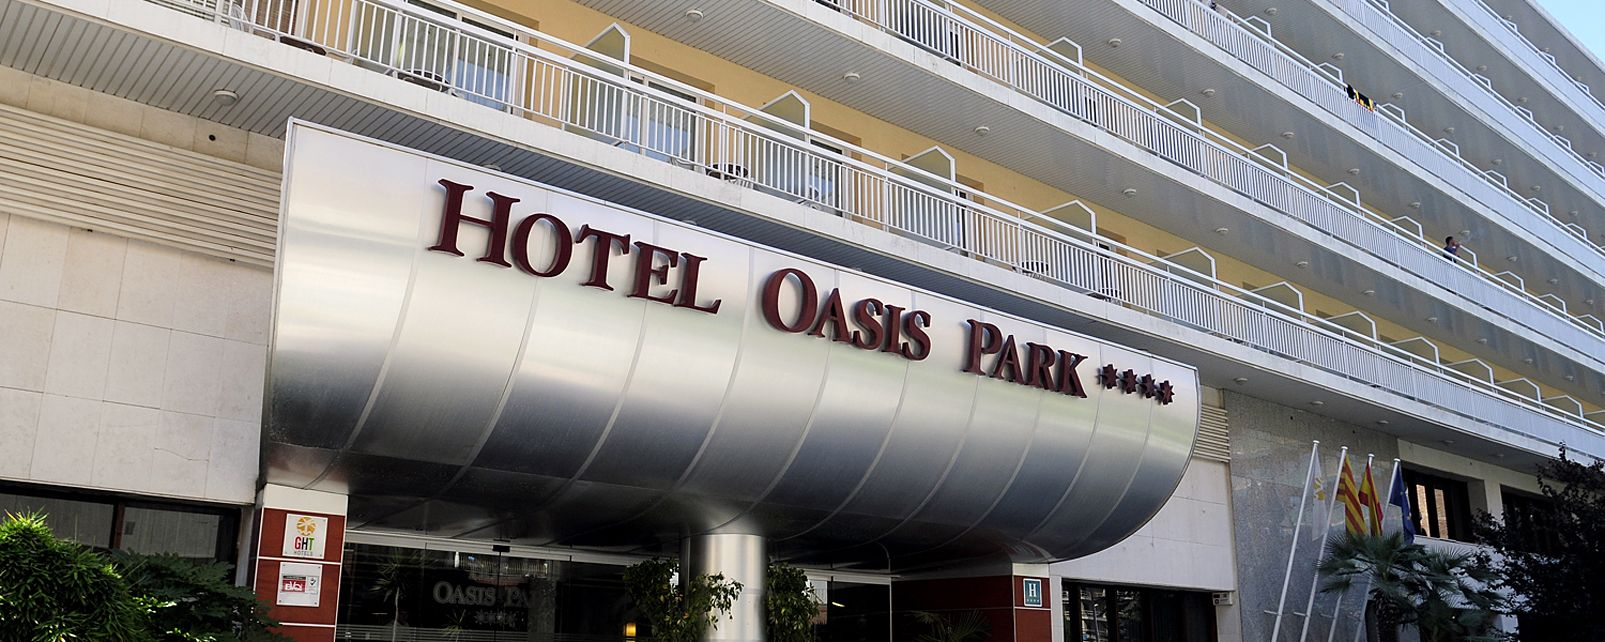 Hotel GHT Oasis Park Spa